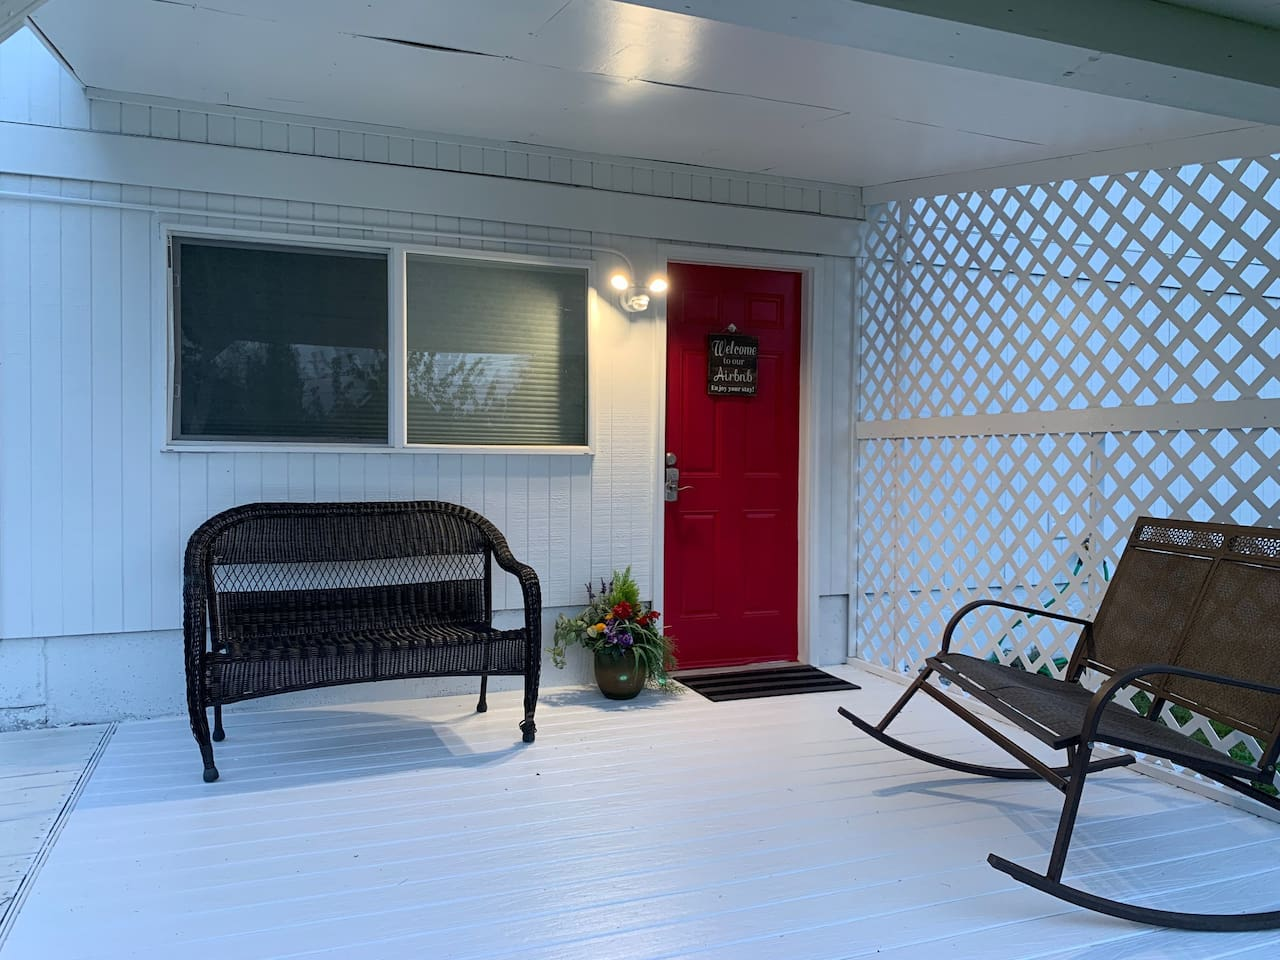 Federal Way Hide-A-Way is a 2 bedroom, 1 bath suite that sleeps SEVEN. Minutes from Aquatic Center and freeway. Seattle only 30 minutes away.